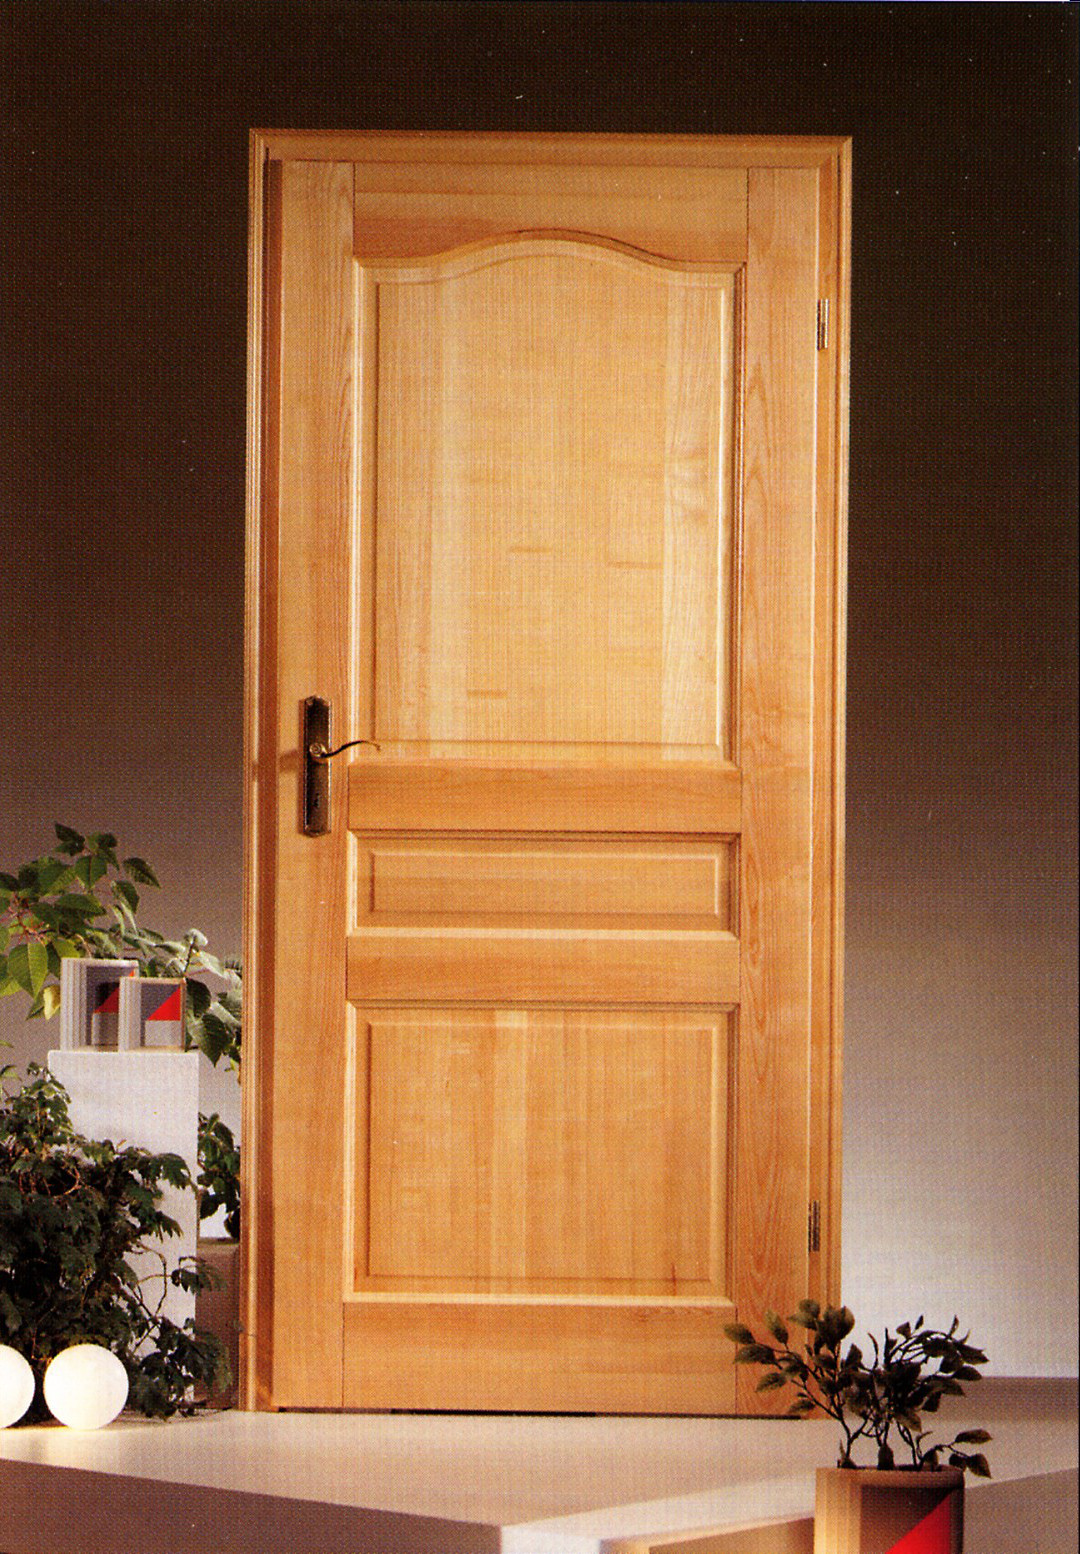 modele porte interieur modele de porte interieur porte texturace a panneaux modele de porte. Black Bedroom Furniture Sets. Home Design Ideas